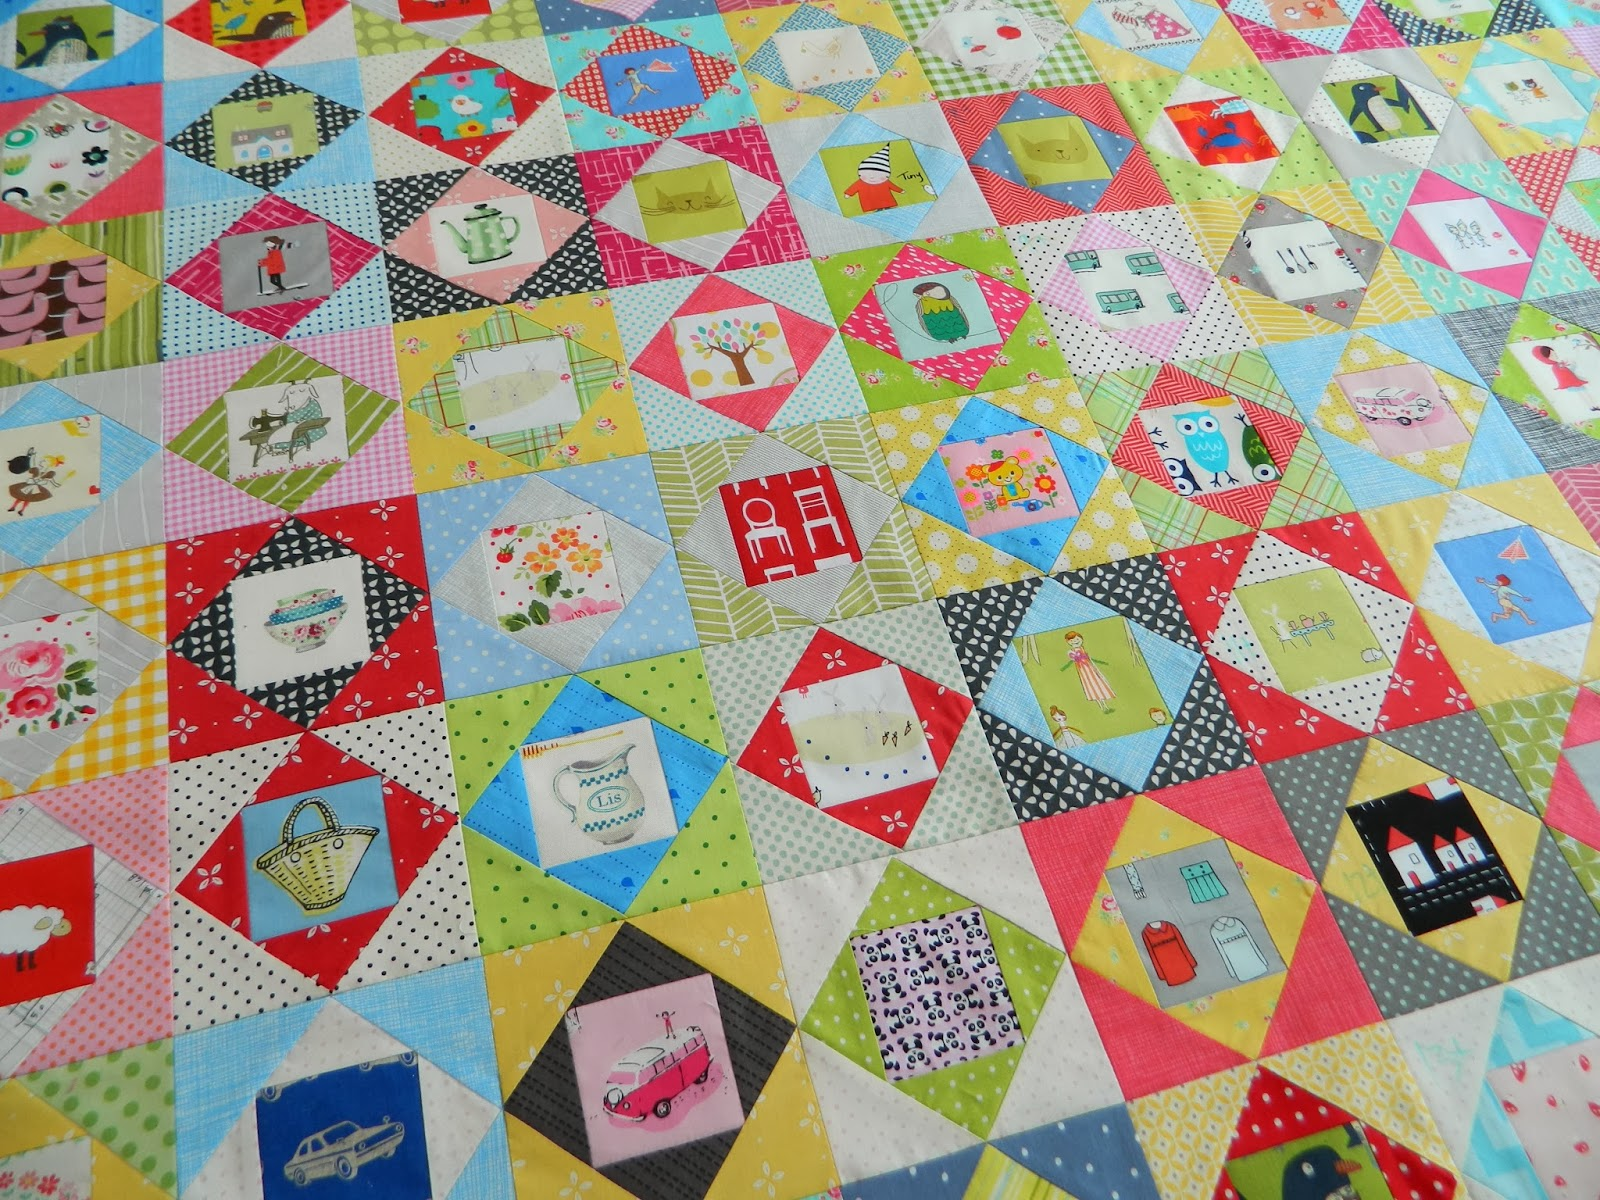 http://sotakhandmade.blogspot.com/2014/01/economy-block-quilt-all-finished.html